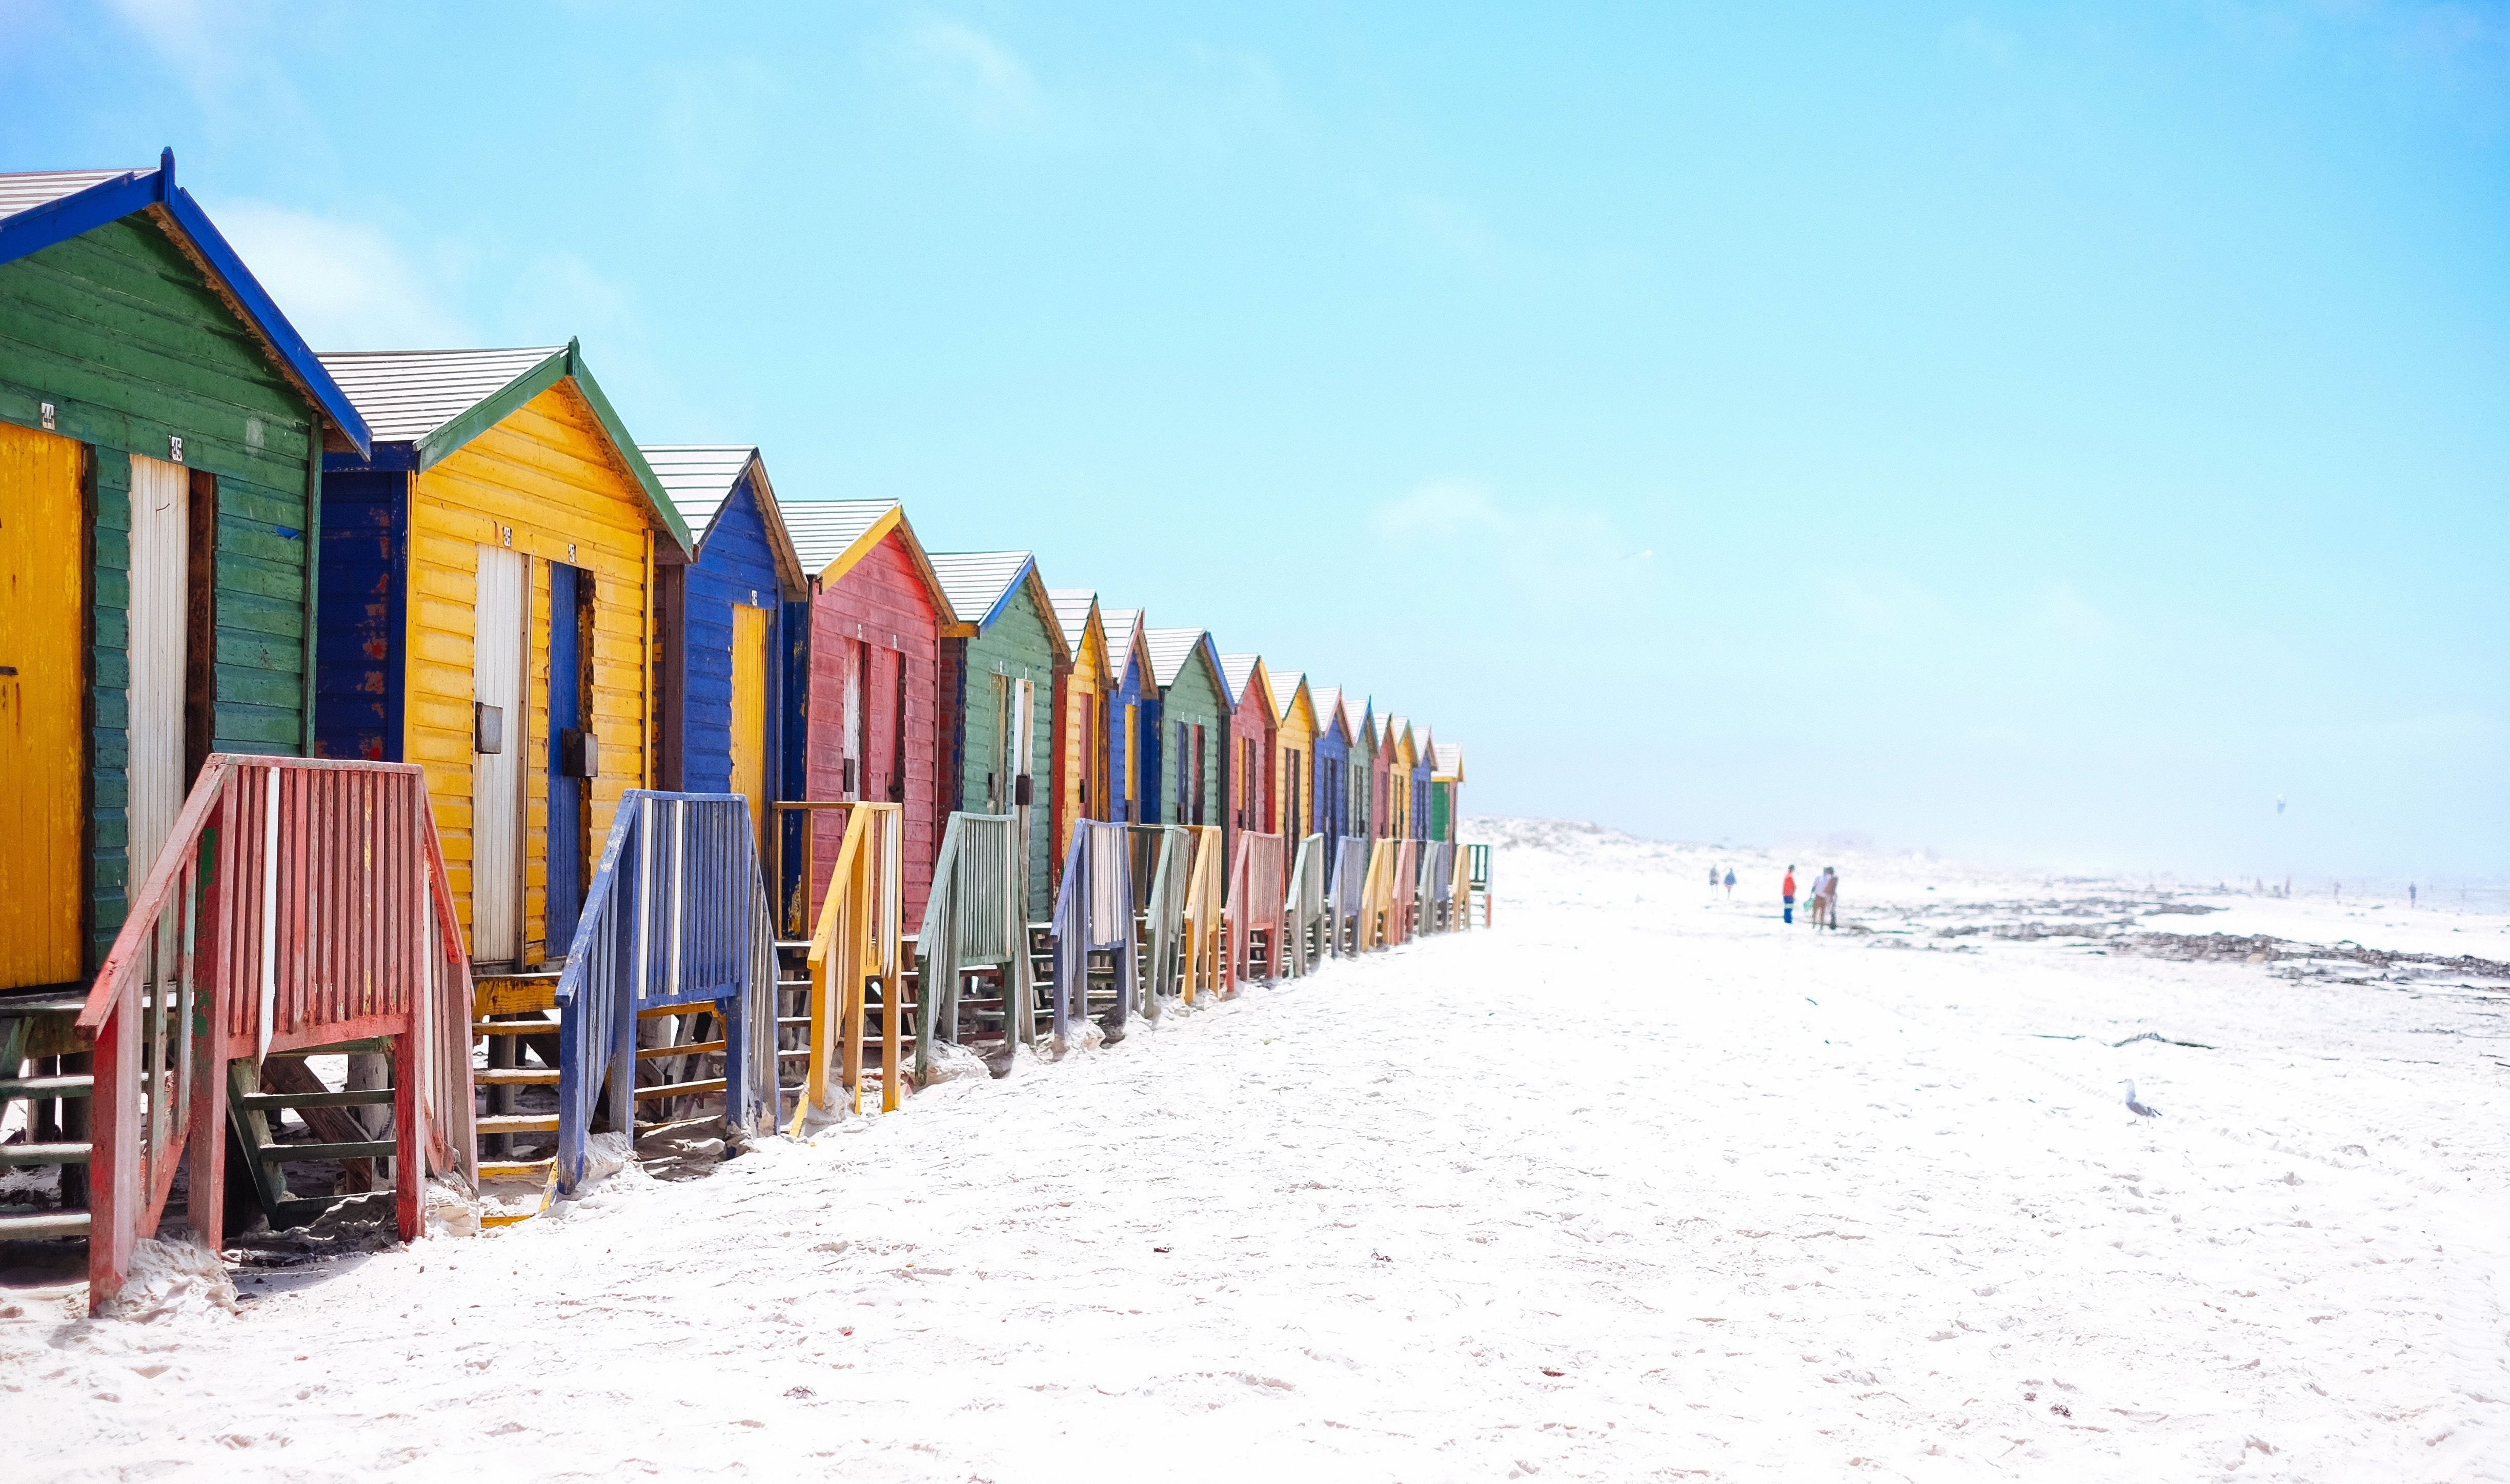 5 travel insiders tell us where they actually go on holiday